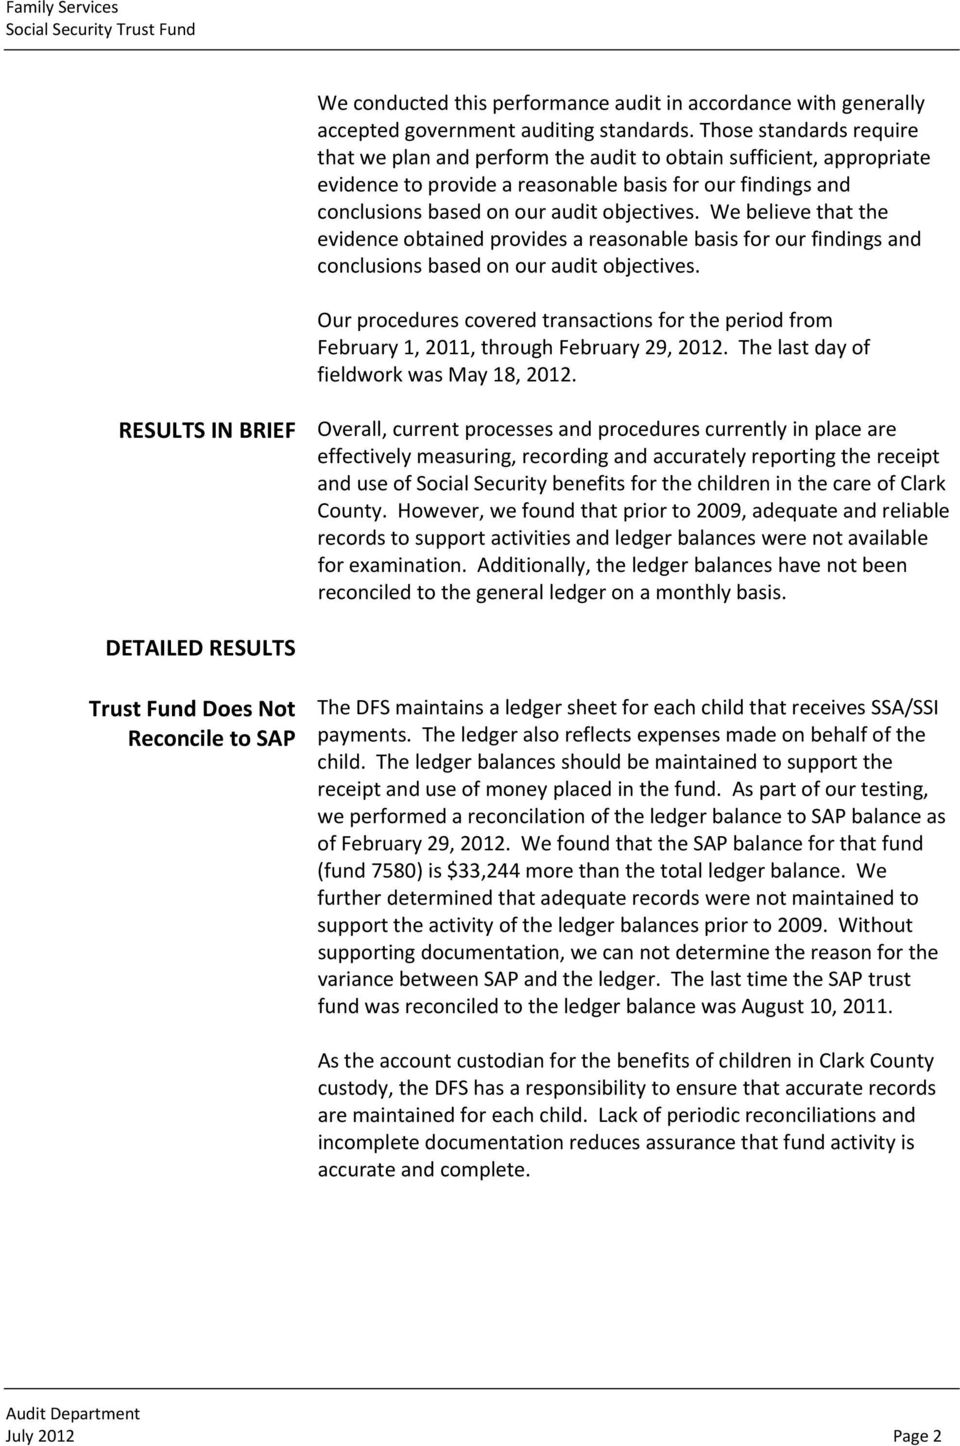 Audit Report  Family Services Social Security Trust Fund